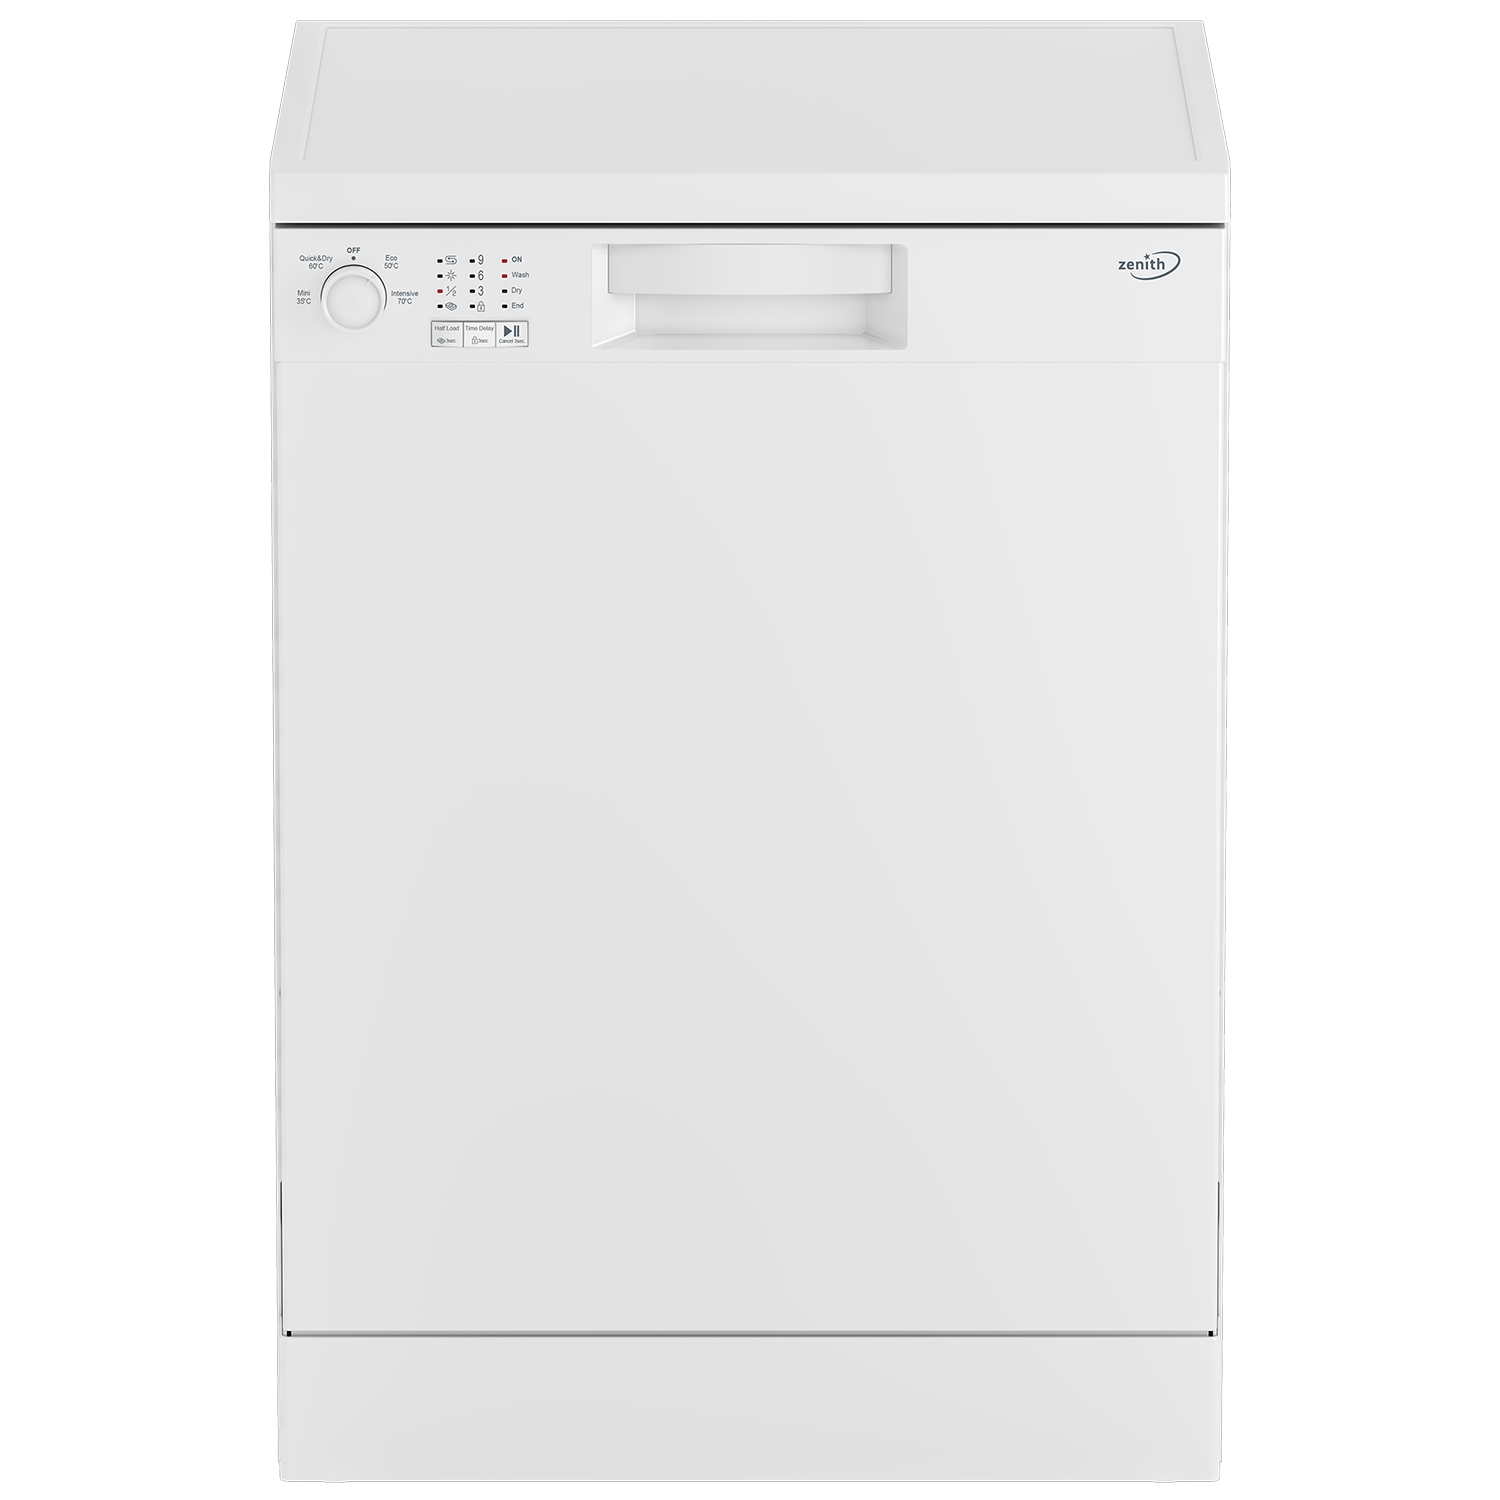 Zenith Full Size Dishwasher - White - A+ Energy Rated - 0